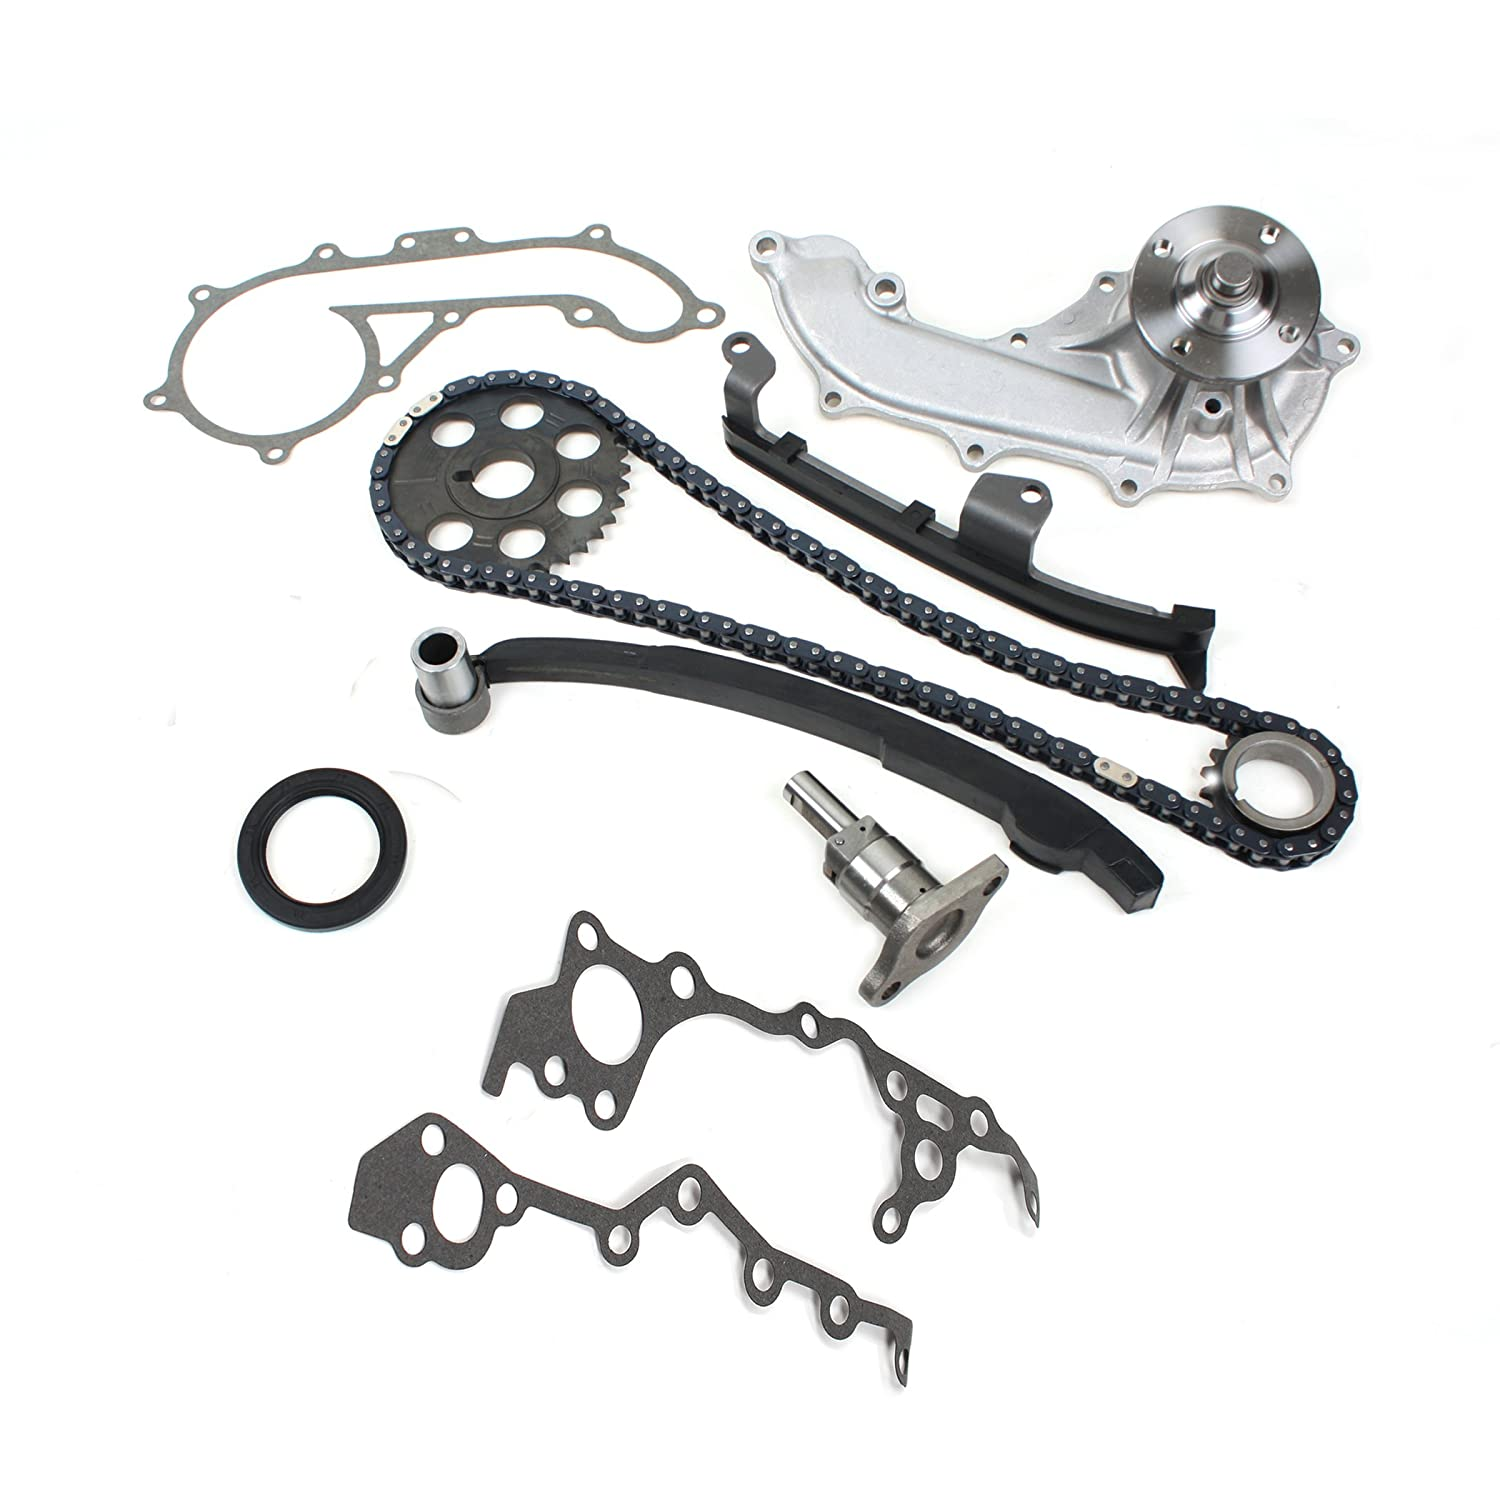 TK10130WP New (102-links) Timing Chain Kit & Water Pump Set for 95-04 Toyota Tacoma 2.4L DOHC 2RZ-FE 2RZFE Engine CNS EngineParts